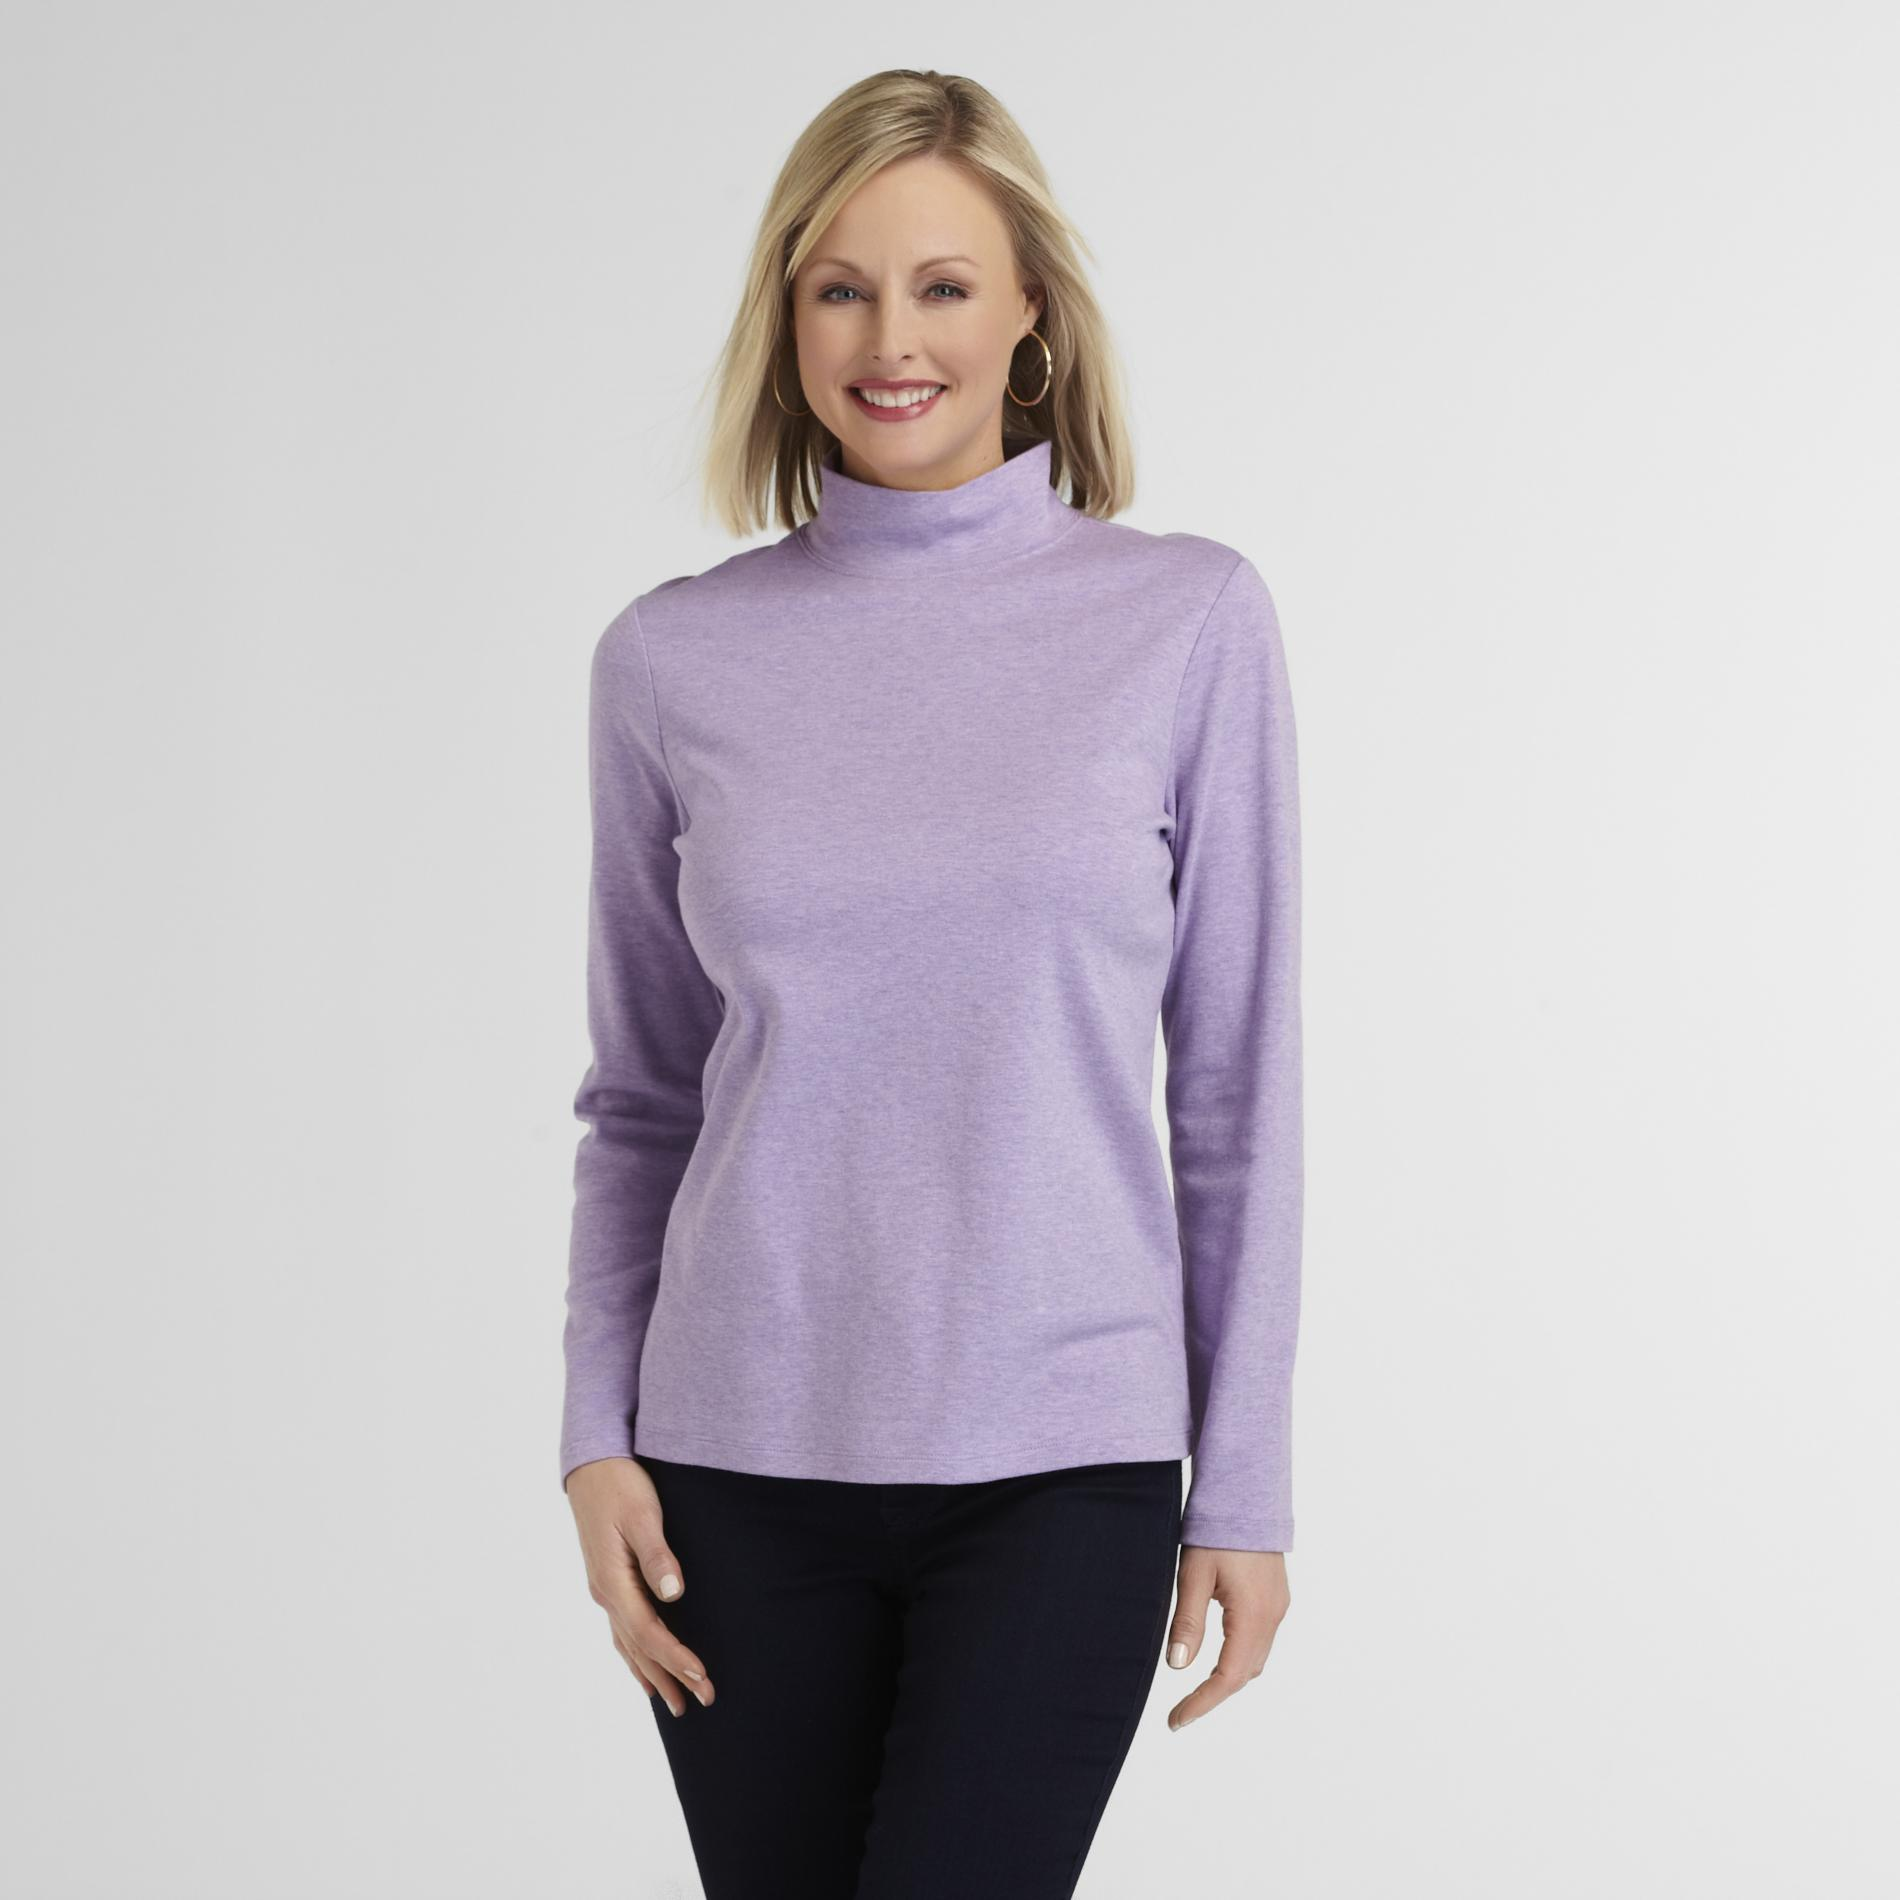 Laura Scott Women's Mock Neck Top - Heathered at Sears.com